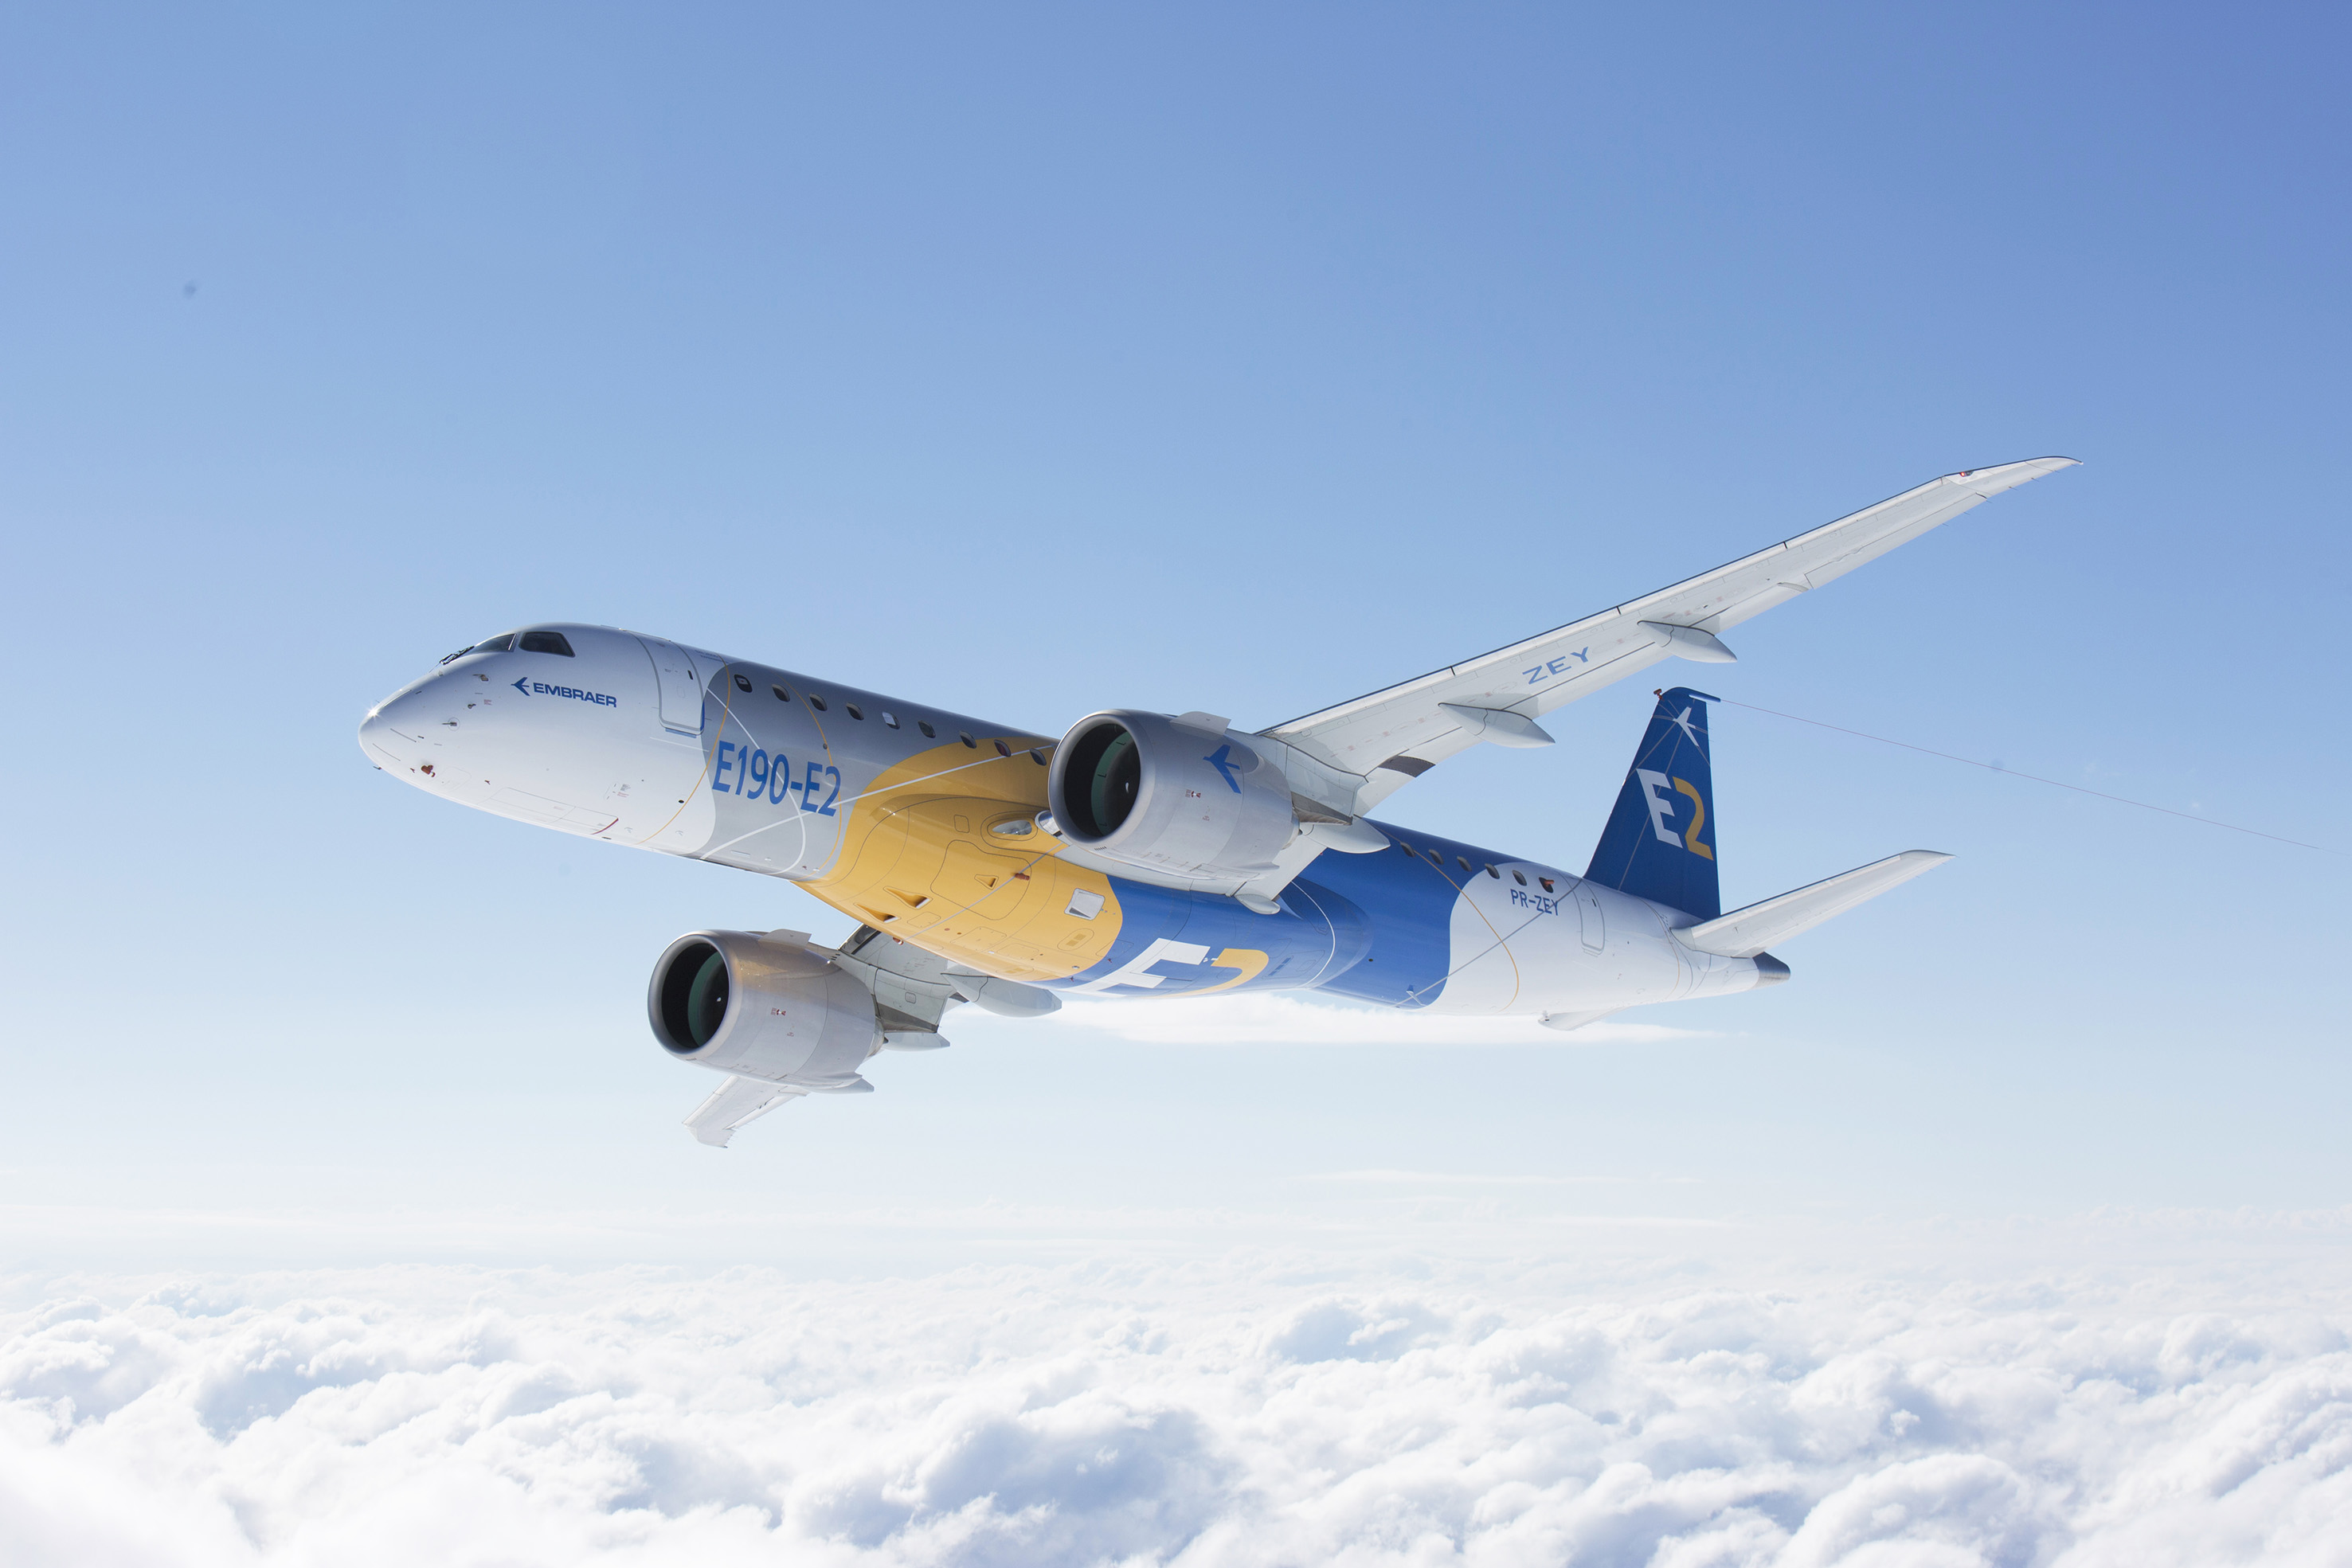 Embraer announces the completion of maiden flight of the E190-E2